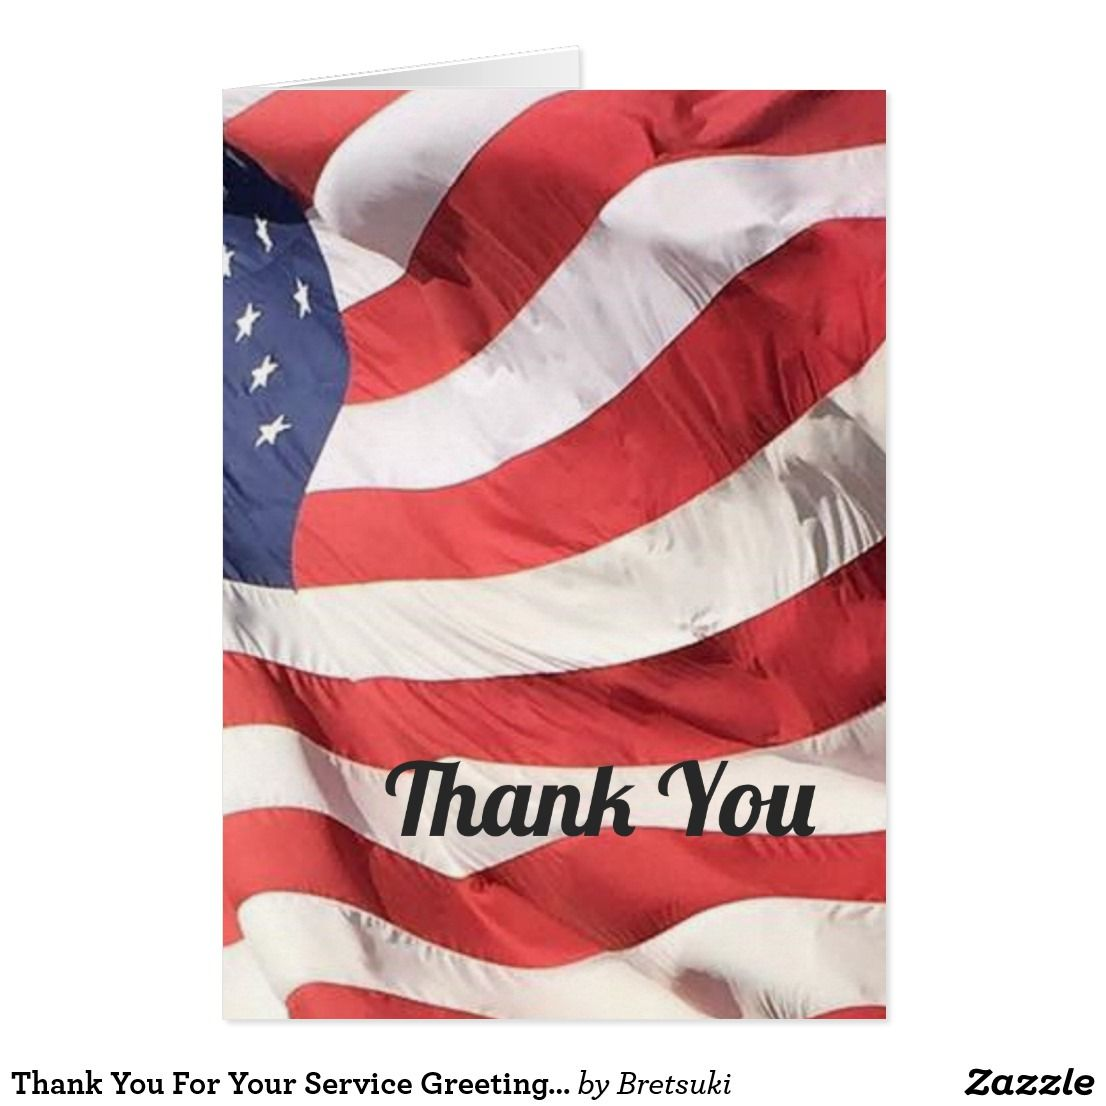 Thank You For Your Service Greetings Card